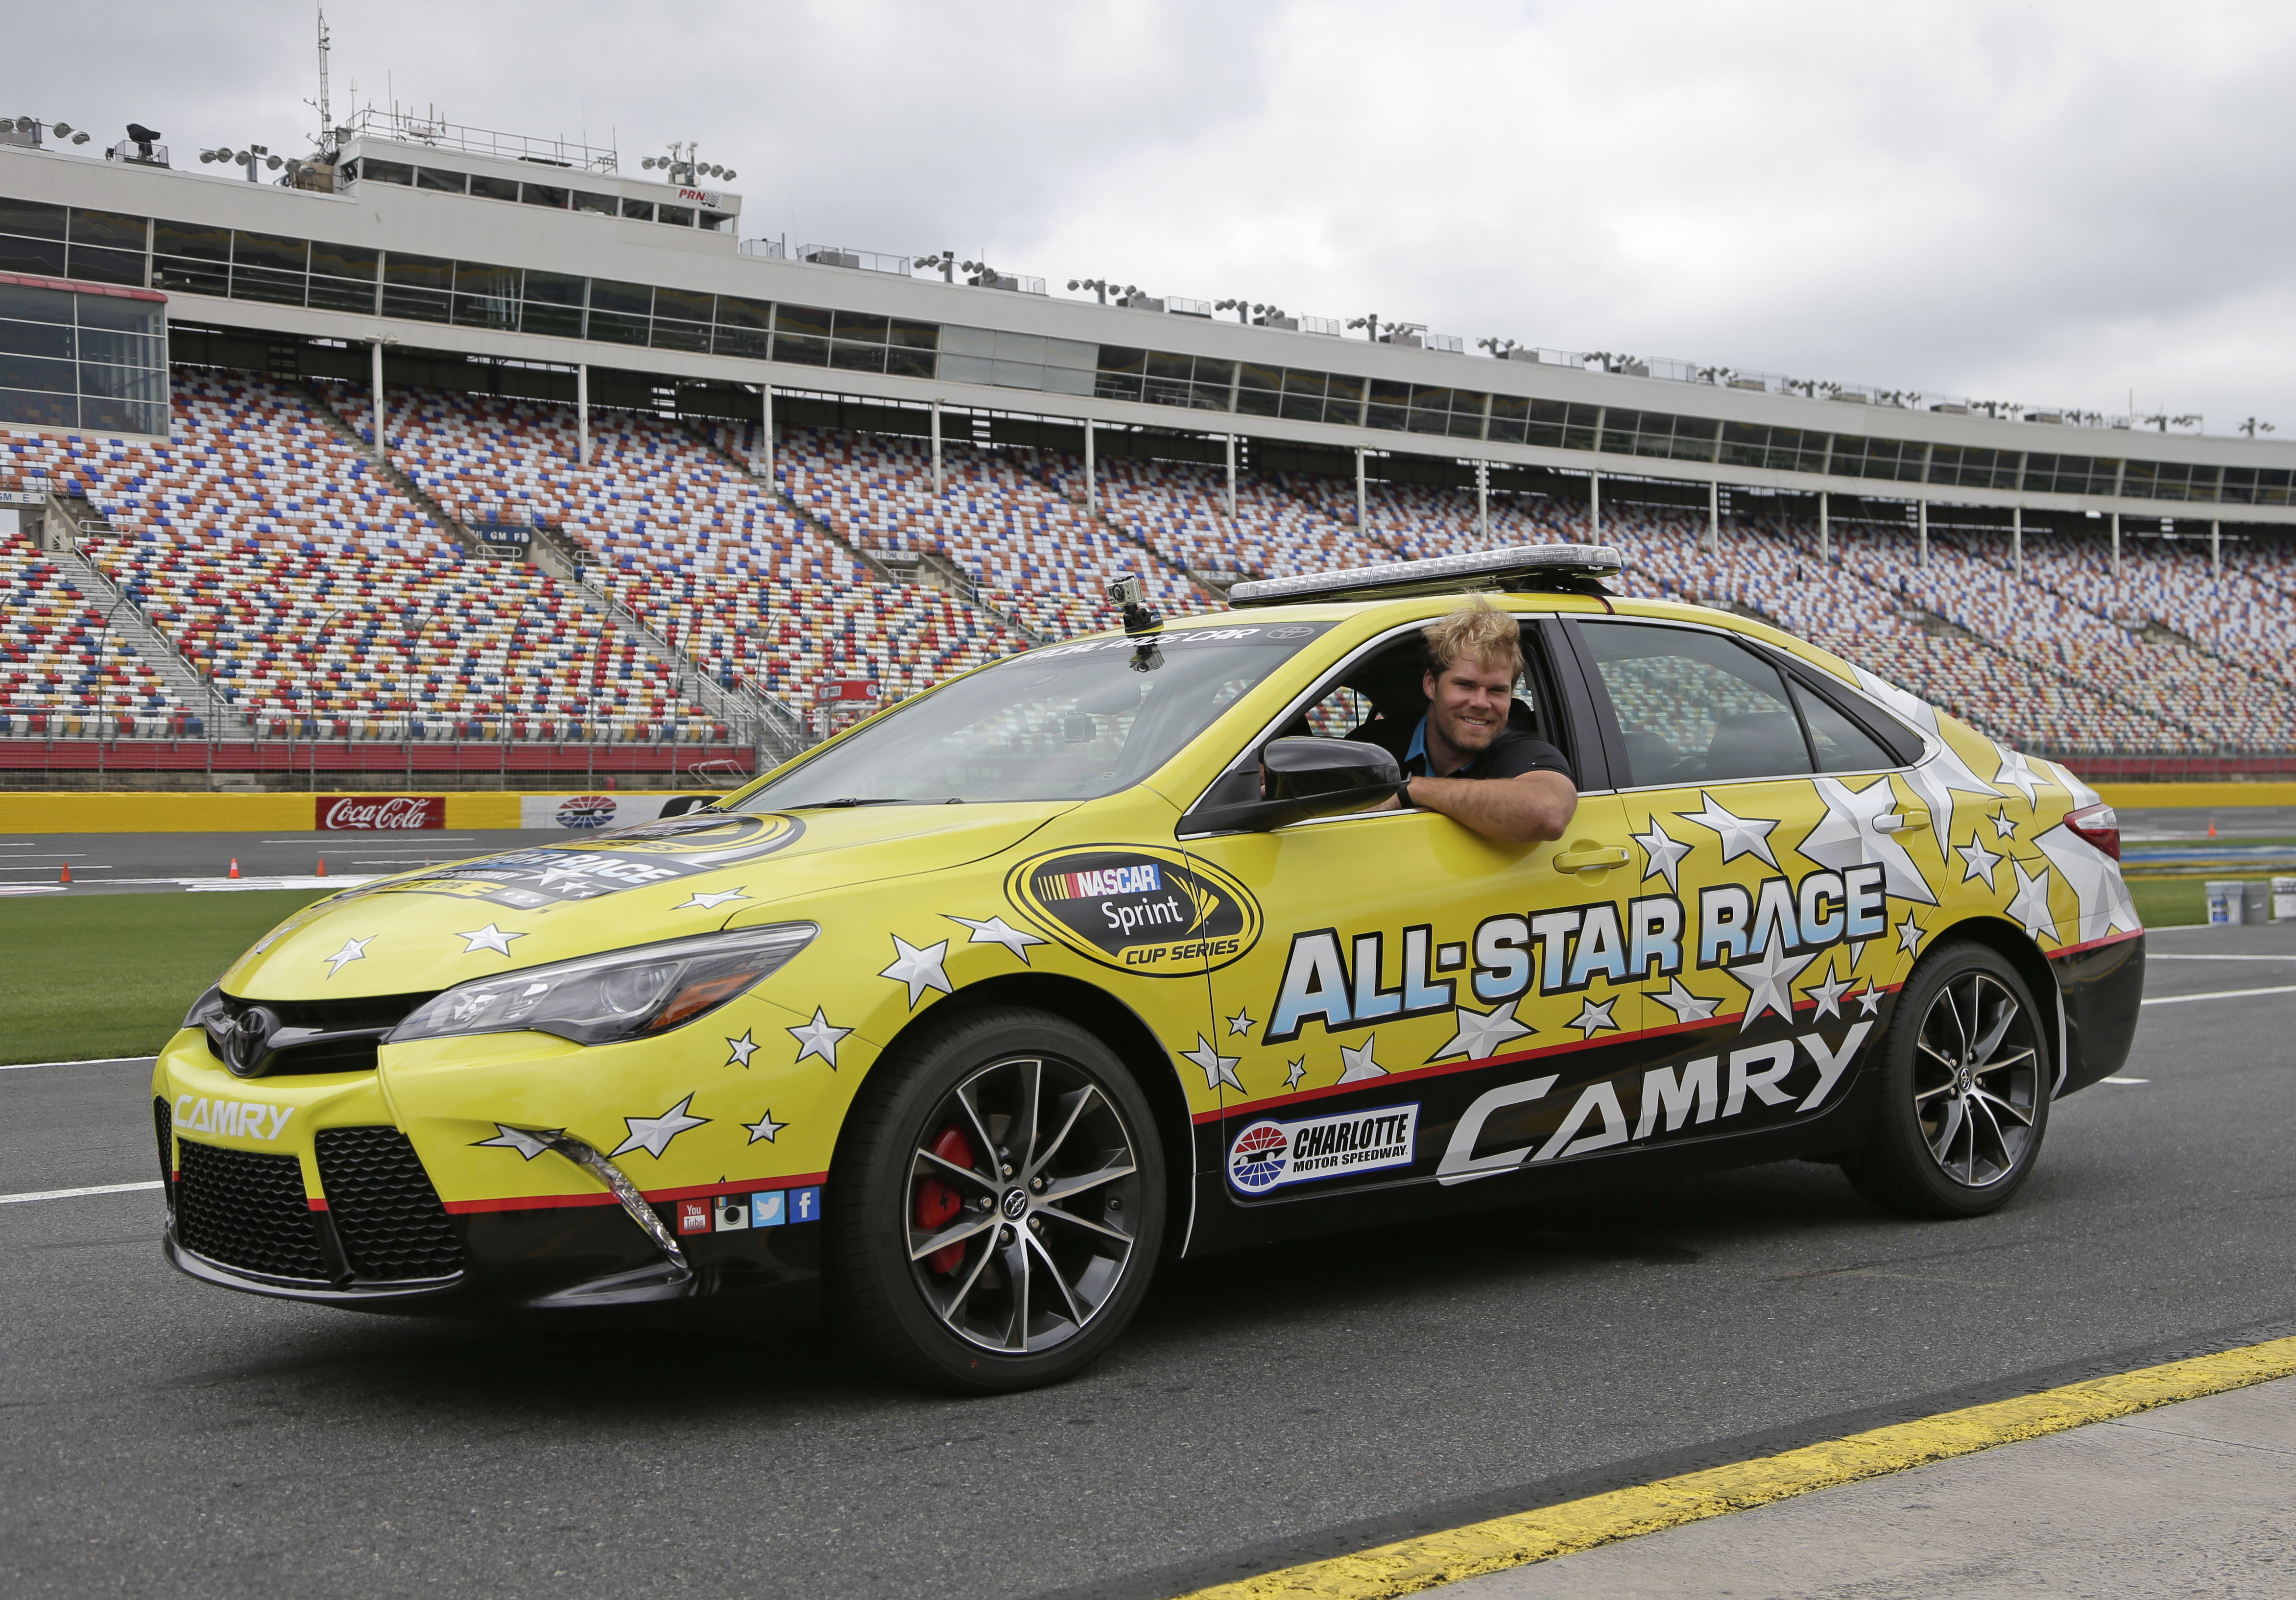 Carolina Panthers' Greg Olsen leans out of the pace car before taking certification laps during a news conference at Charlotte Motor Speedway in Concord, N.C., Wednesday, May 18, 2016. Olsen will lead the field at the start of the NASCAR Sprint Cup series